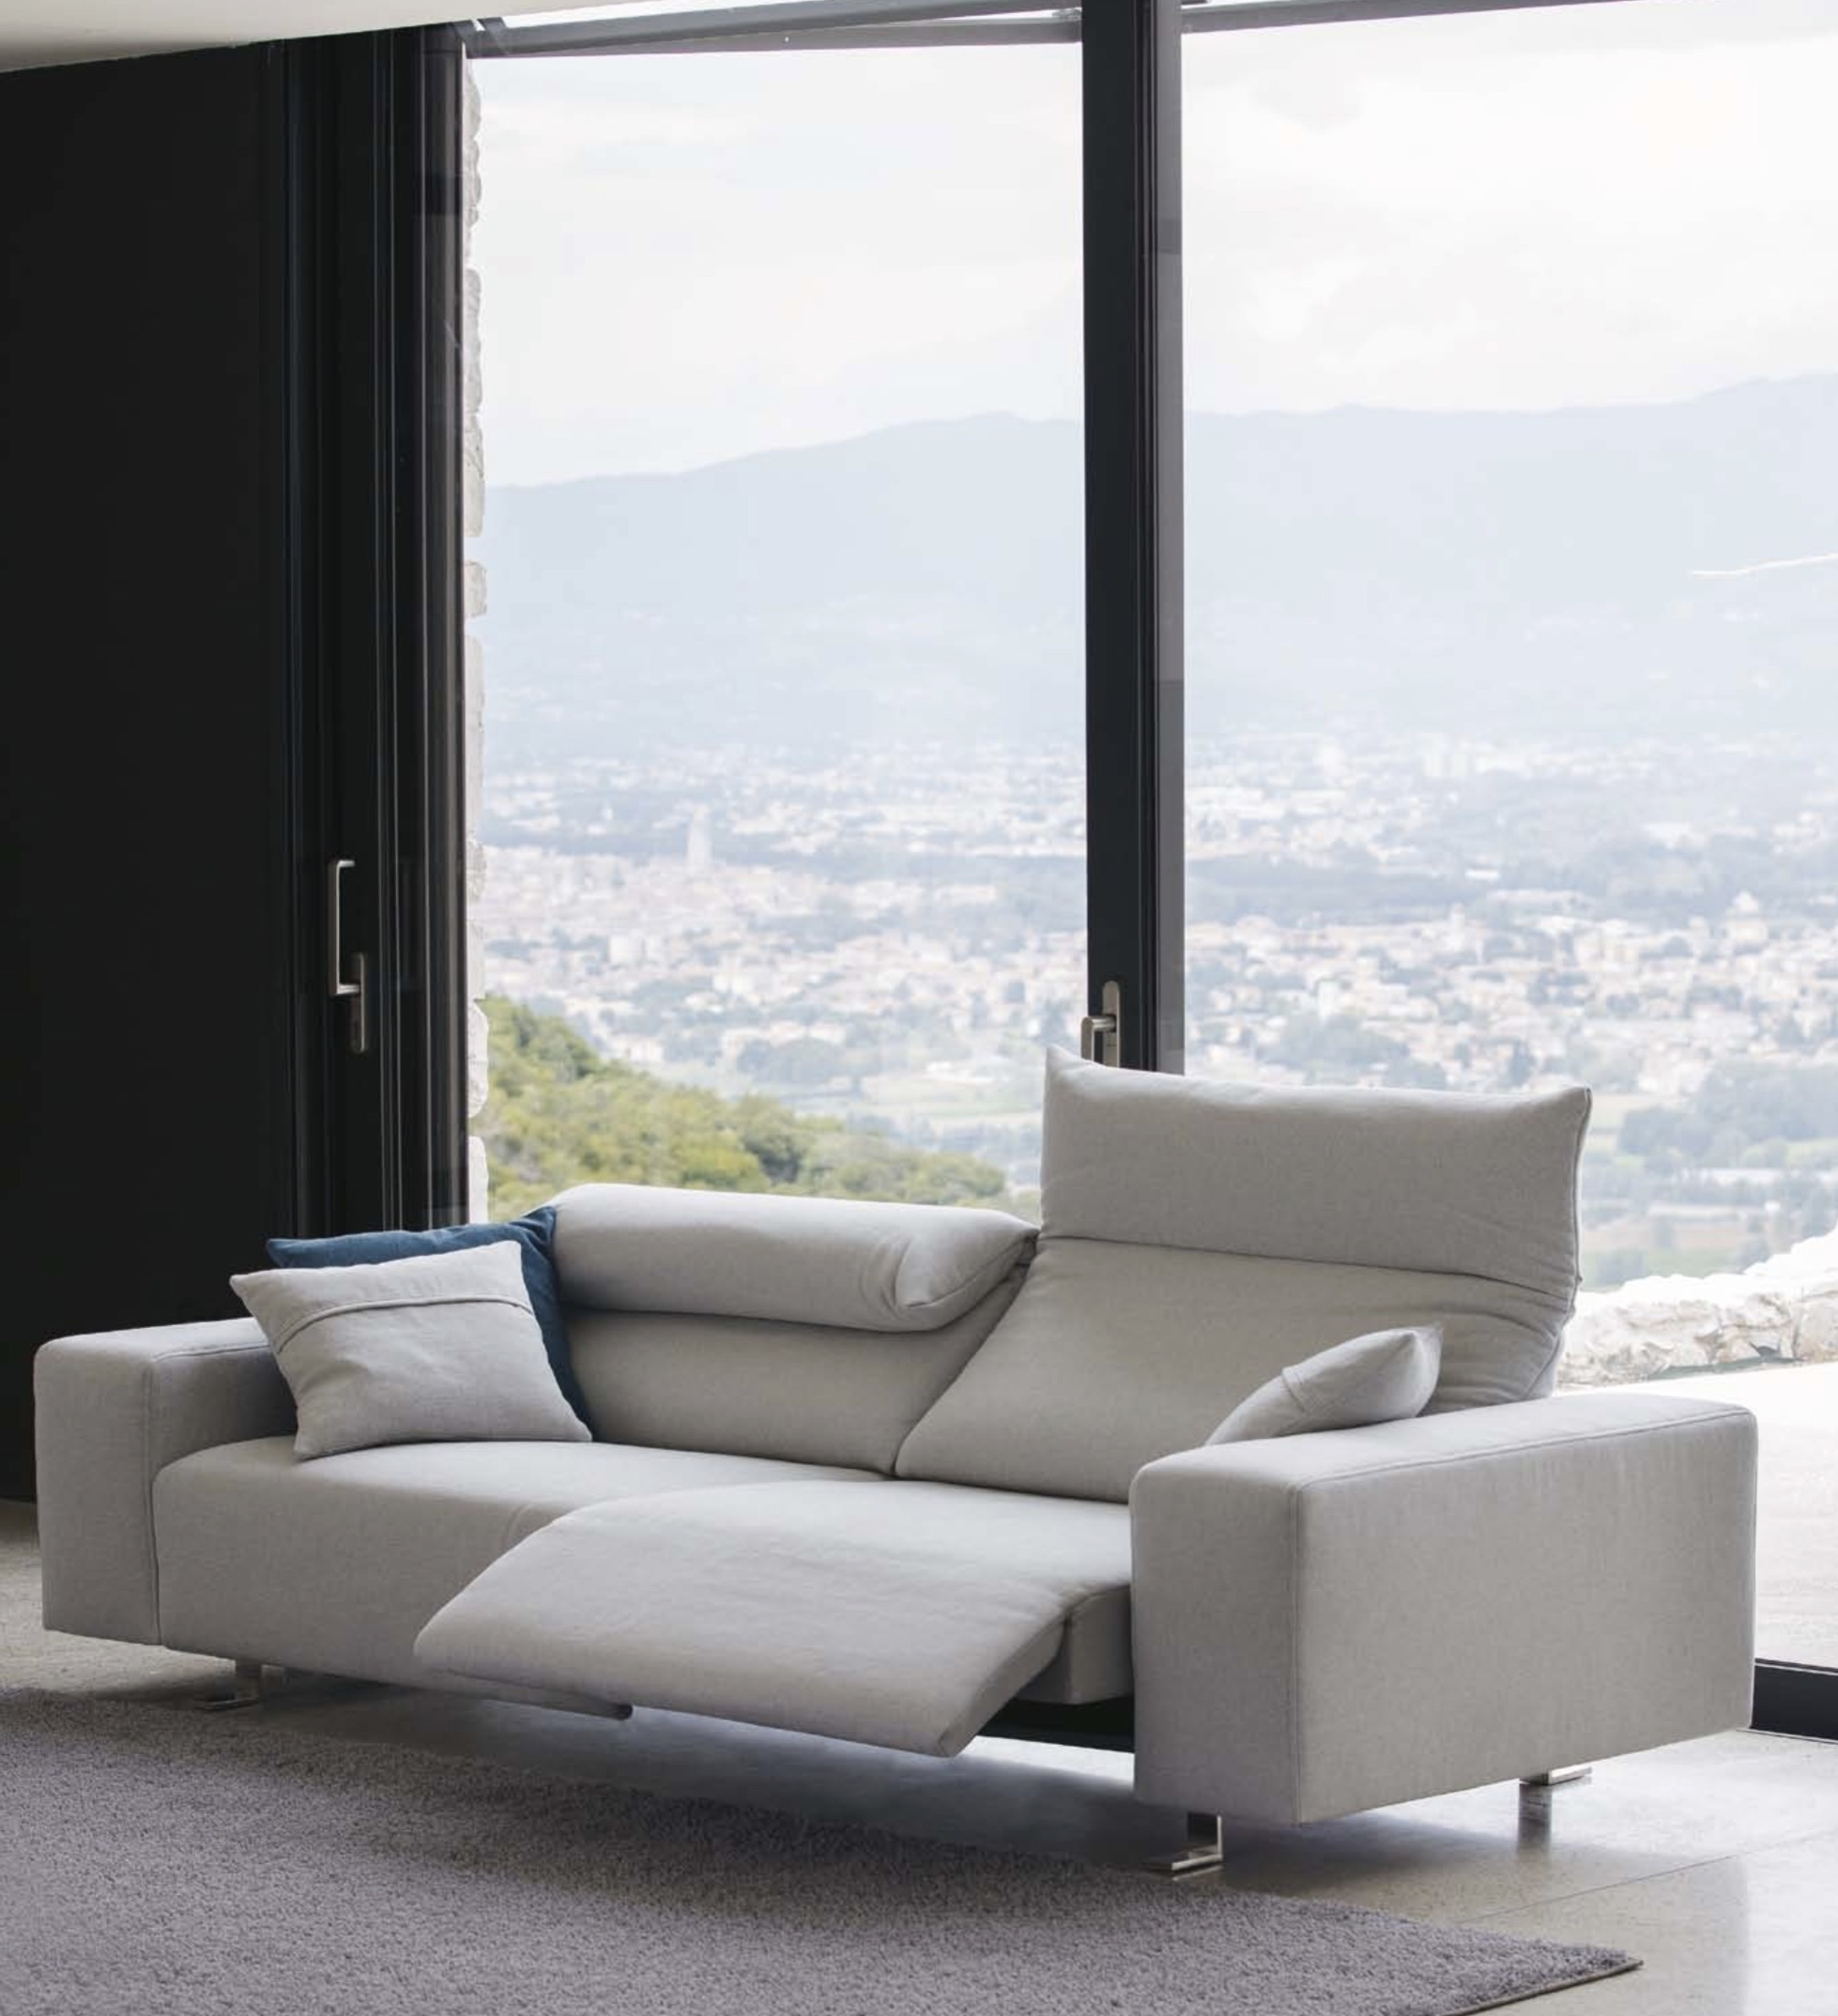 Italian Designed Furniture Inspirational Italian Sofas At With Regard To Famous Modern Sofas (View 6 of 15)